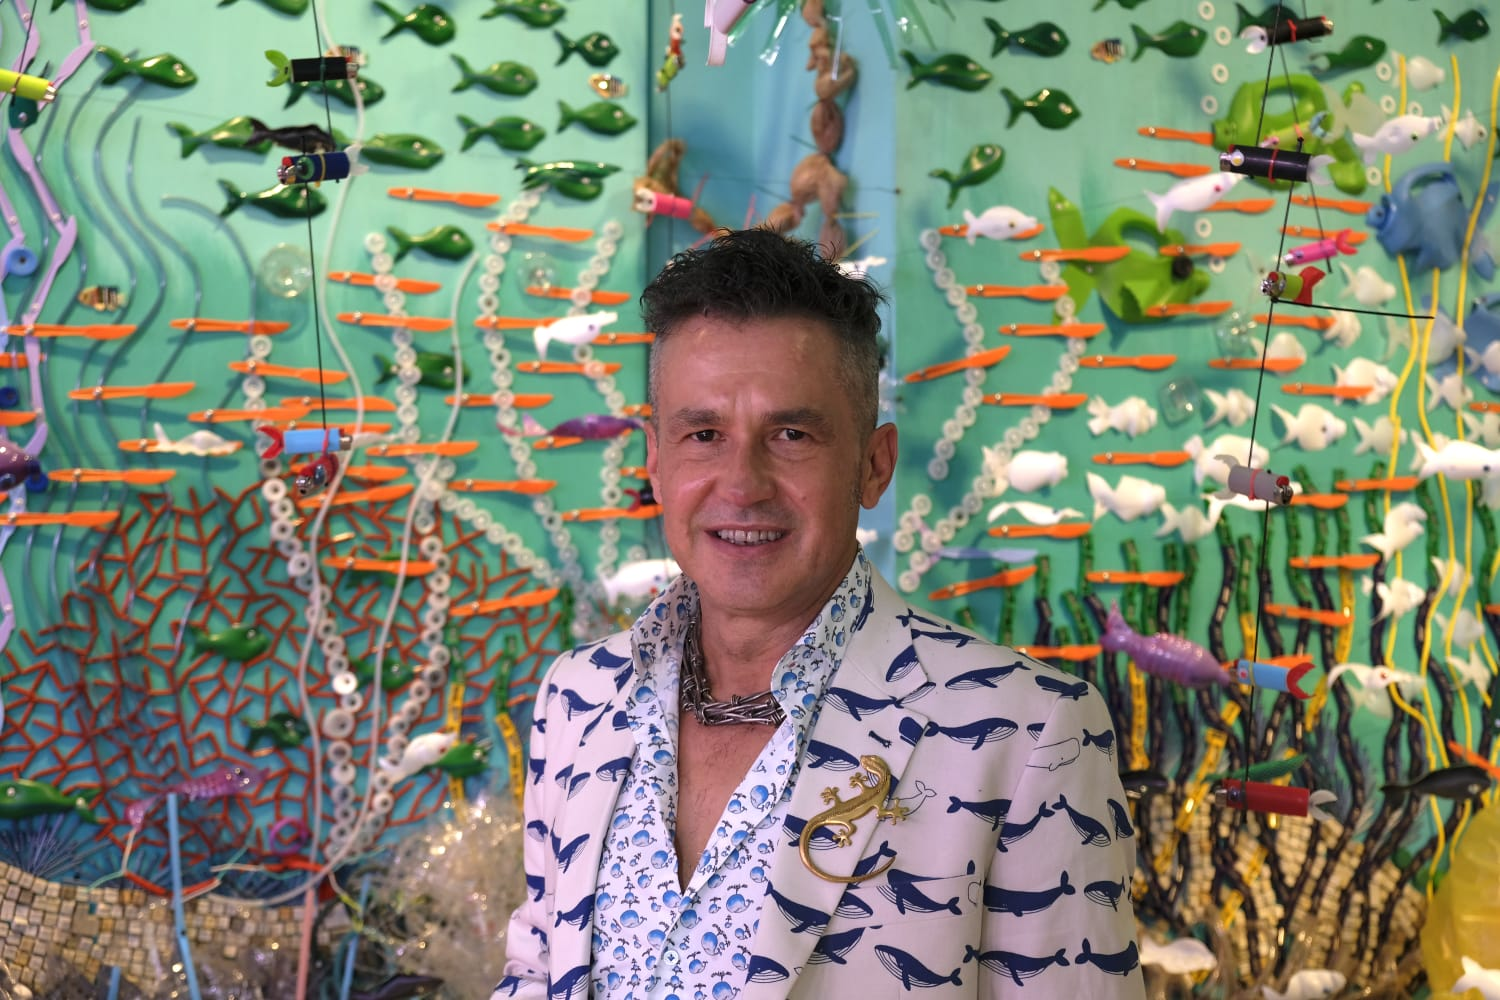 I'm an image! Federico Uribe in front of one of his works: an installation of Plastic Coral Reef.